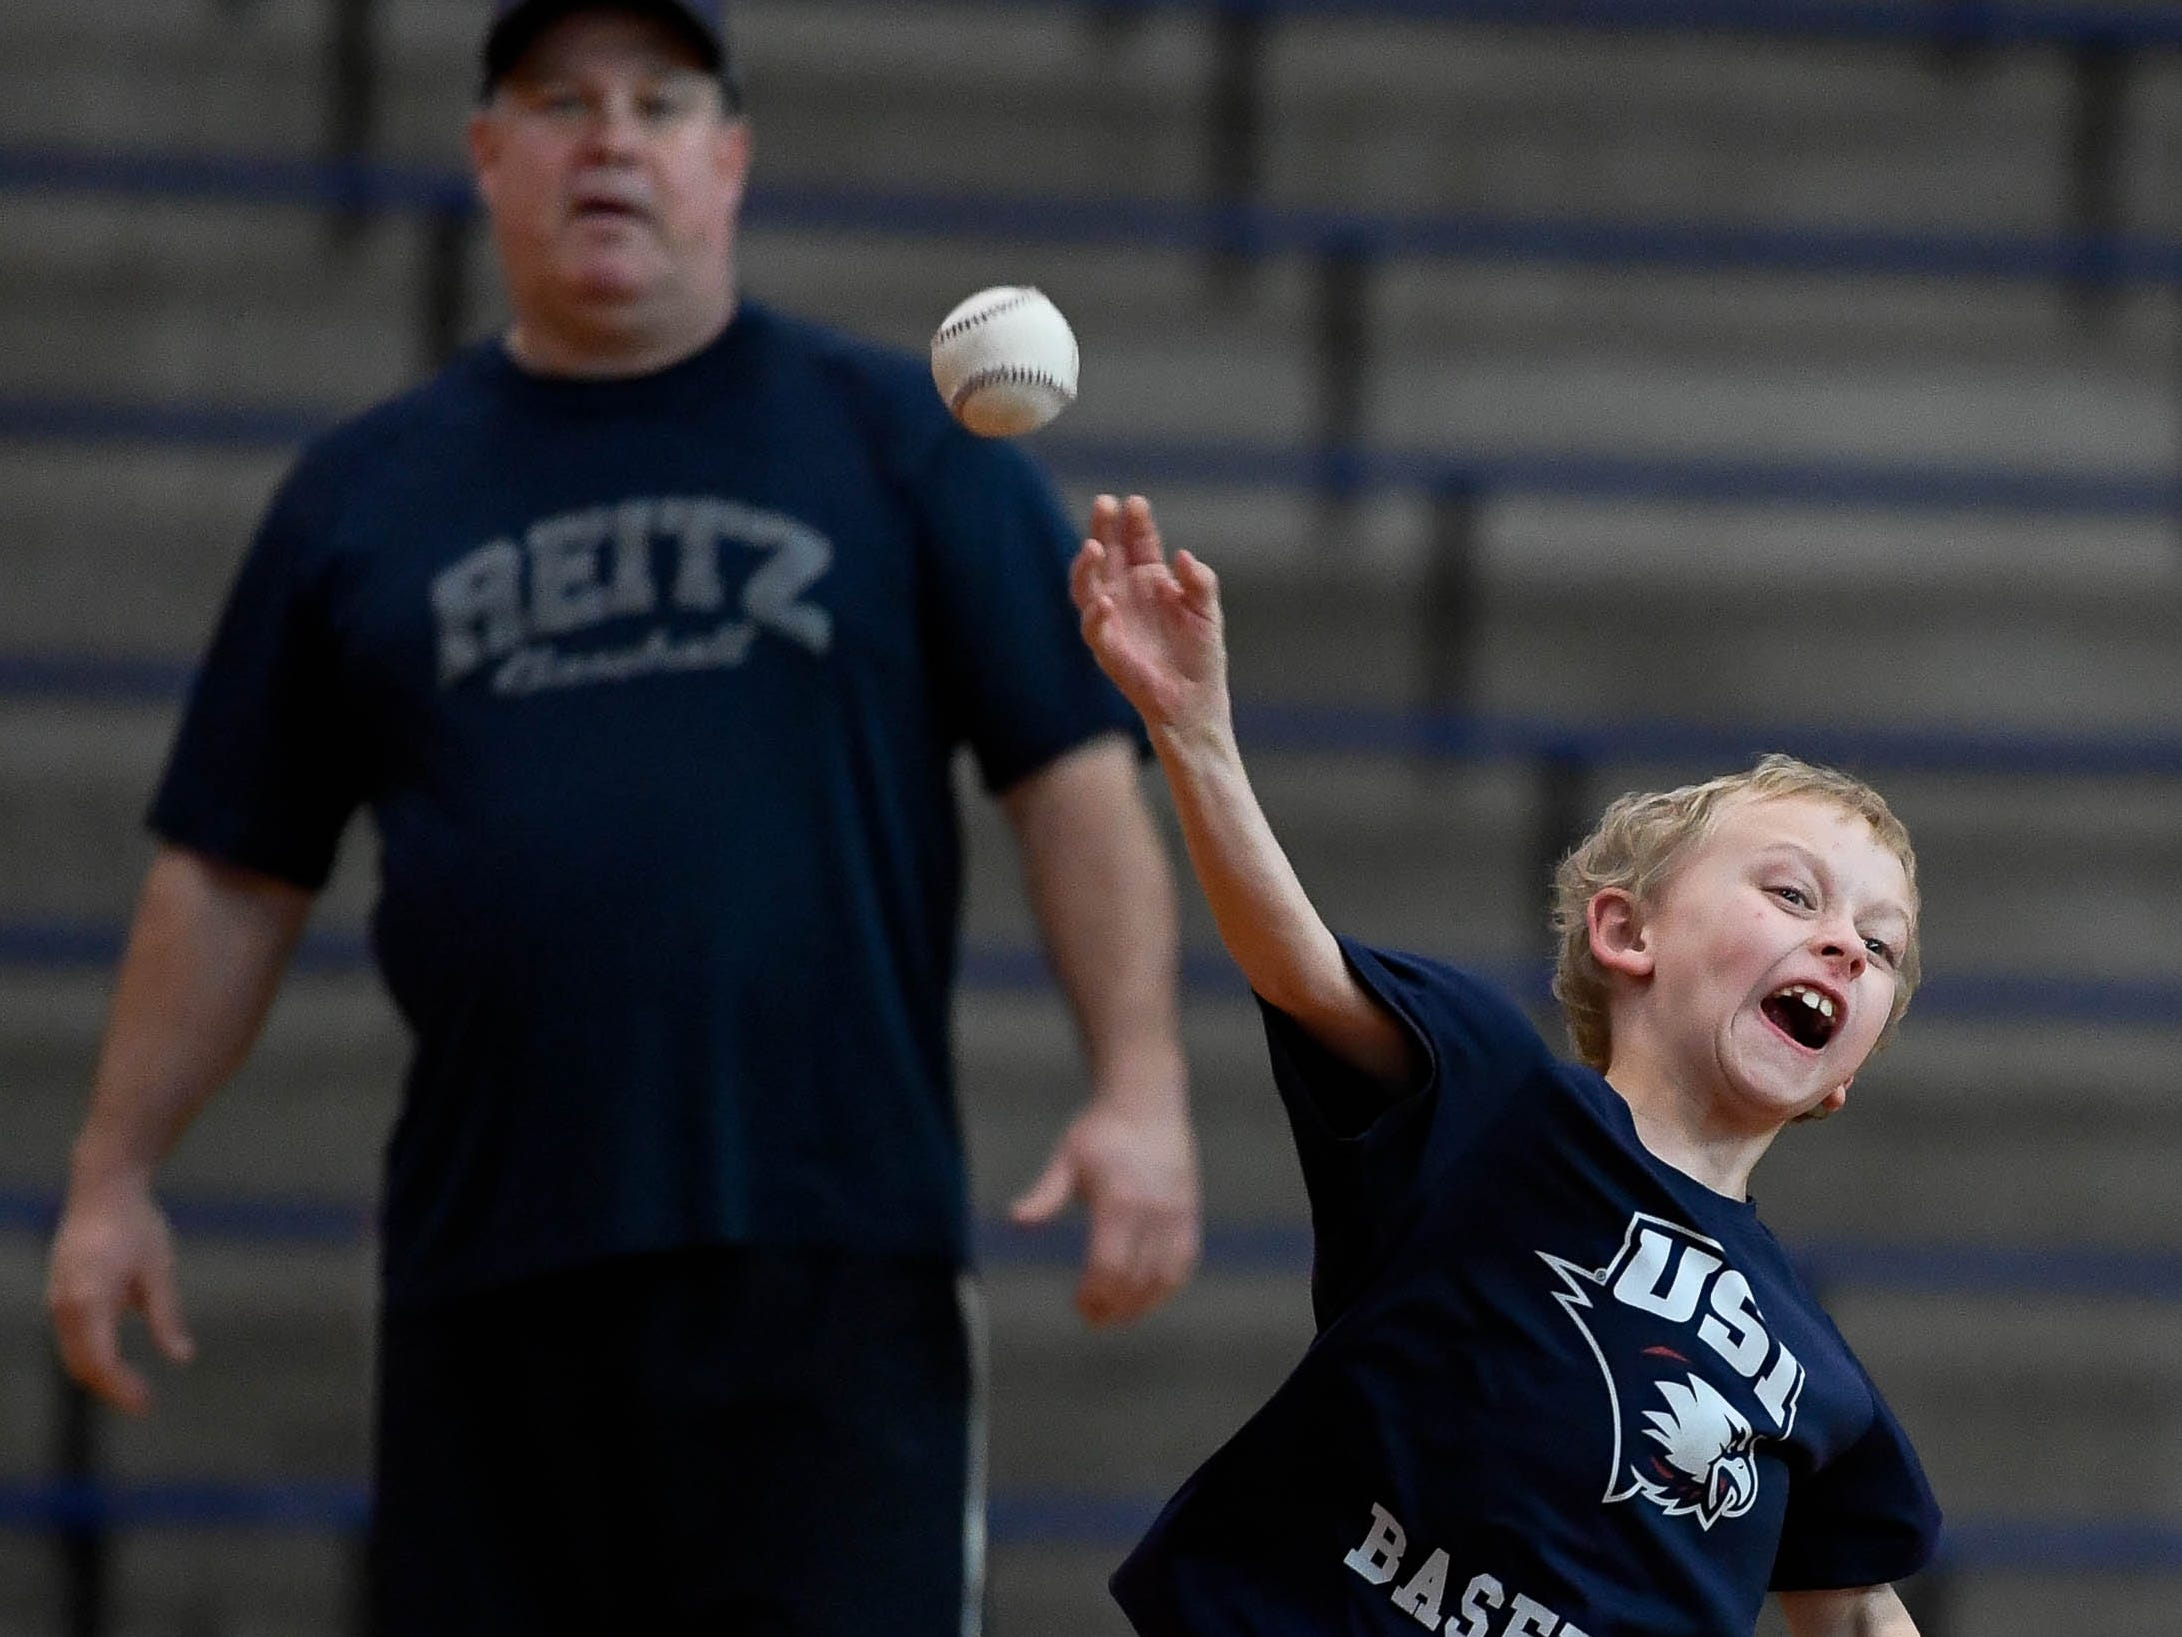 Reitz baseball head coach Todd DeWeese watches as Parker Hensley, eight years-old, makes a throw toward home plate during fielding practice at the 2018 Reitz Baseball Holiday Camp, for grades 1-7, held at the Reitz gym Wednesday, December 26, 2018.